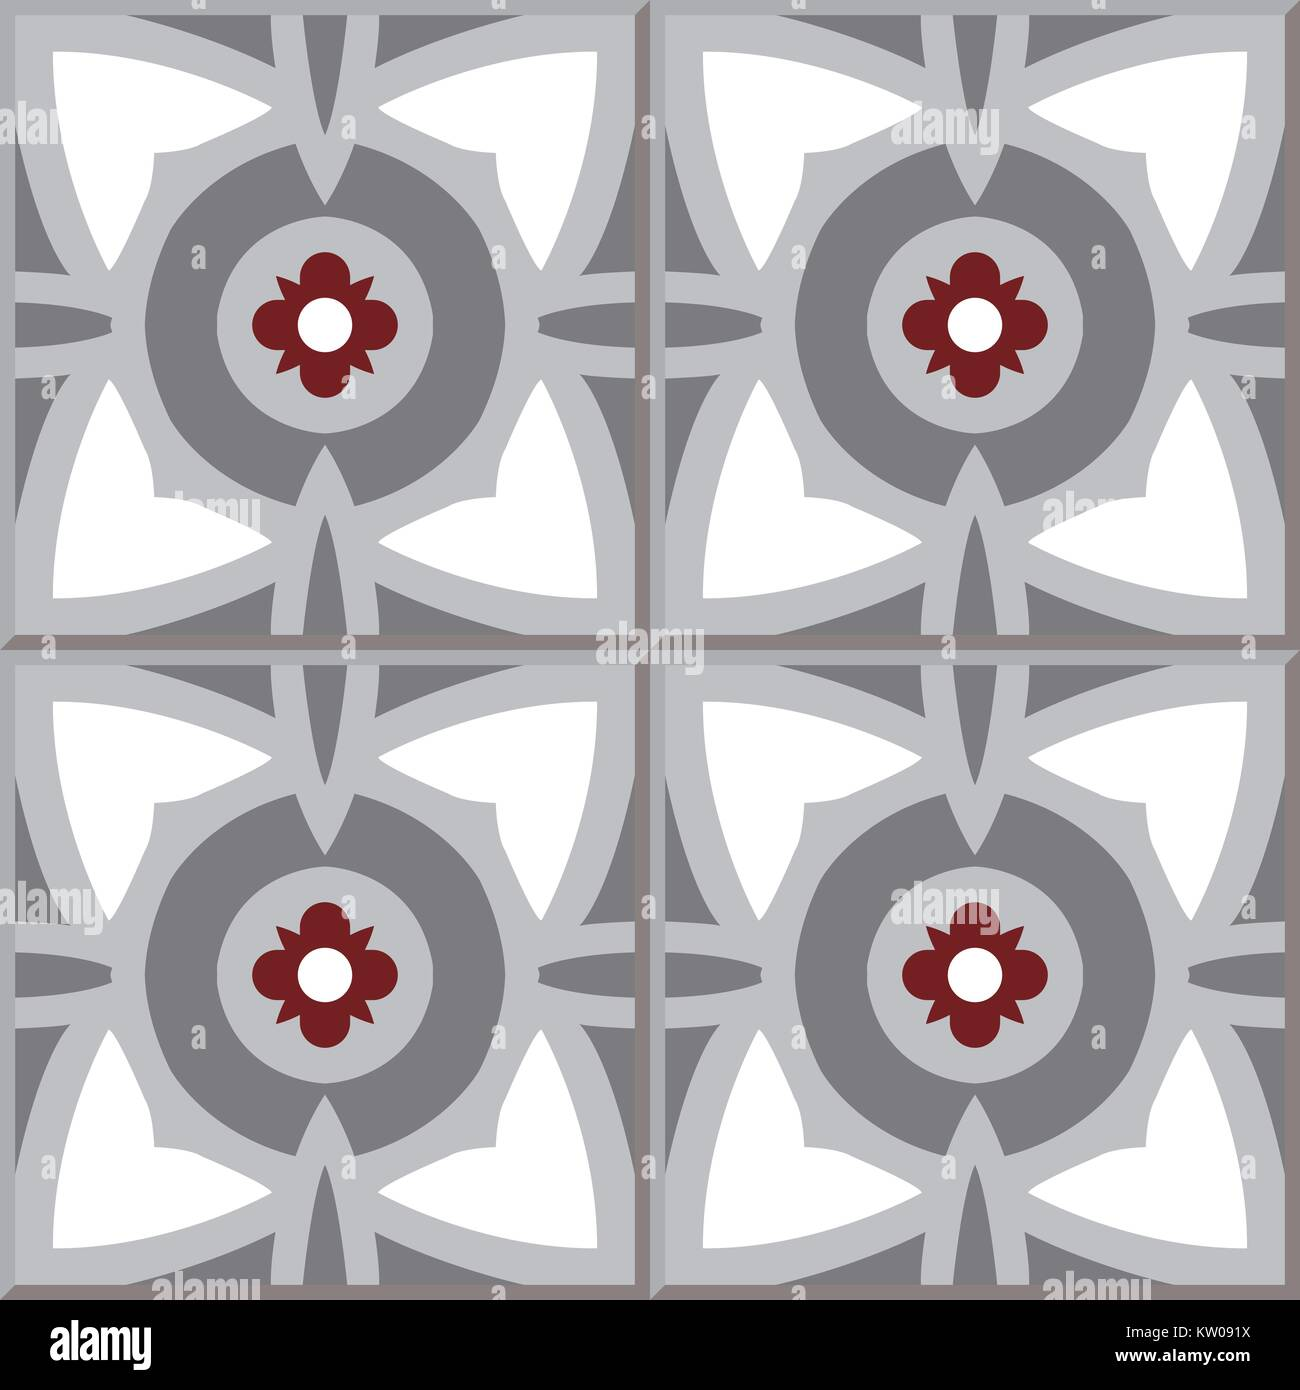 Ceramic Tile Pattern Of Grey Round Red Flower Stock Vector Image Art Alamy